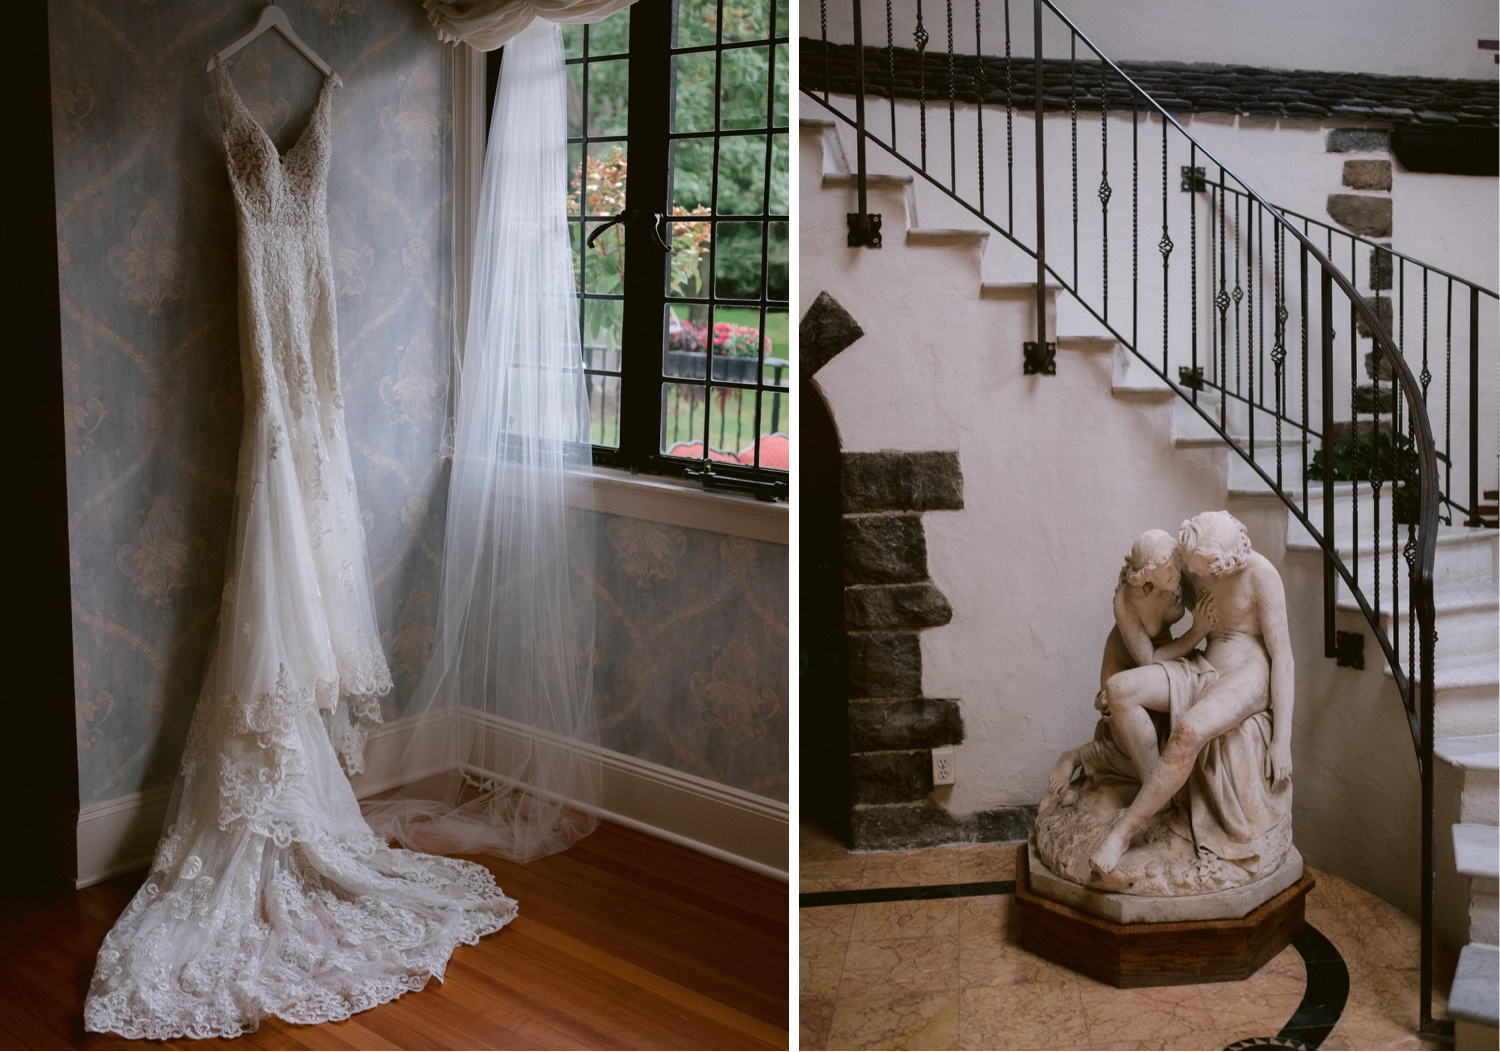 Pleasantdale Chateau Wedding, Pleasantdale Chateau Wedding Photos, Pleasantdale Chateau New Jersey, Best New Jersey Wedding Photographer, Luxury Wedding, Castle Wedding Photographer, Pleasantdale Chateau Wedding Photographer, girls getting ready, wedding dress photo ideas